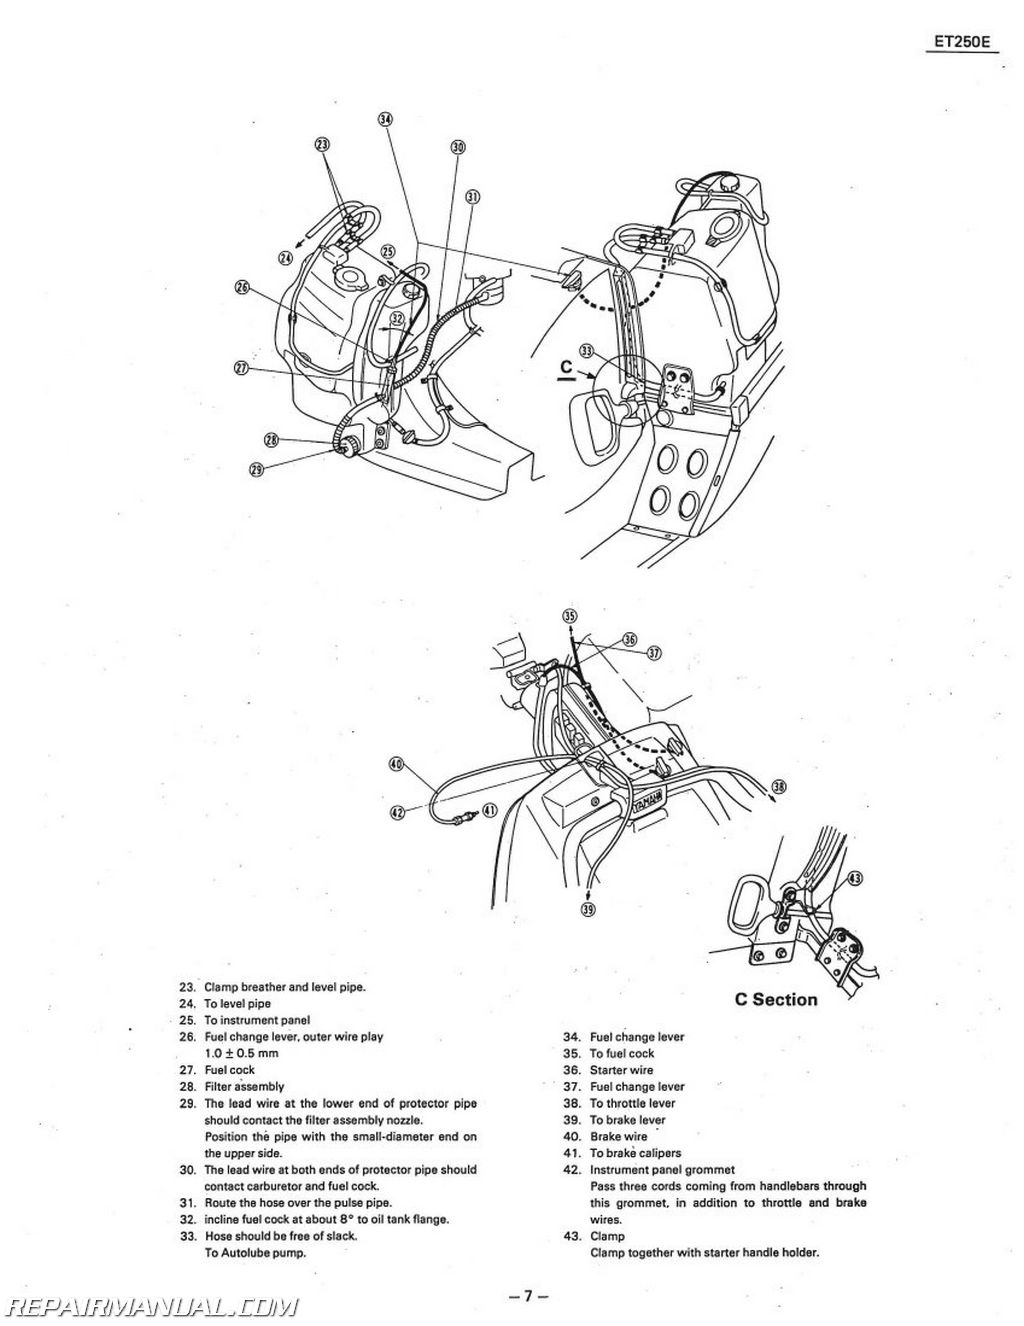 hight resolution of 1978 1981 yamaha enticer et250 snowmobile service manual rh repairmanual com yamaha timberwolf 250 wiring diagram